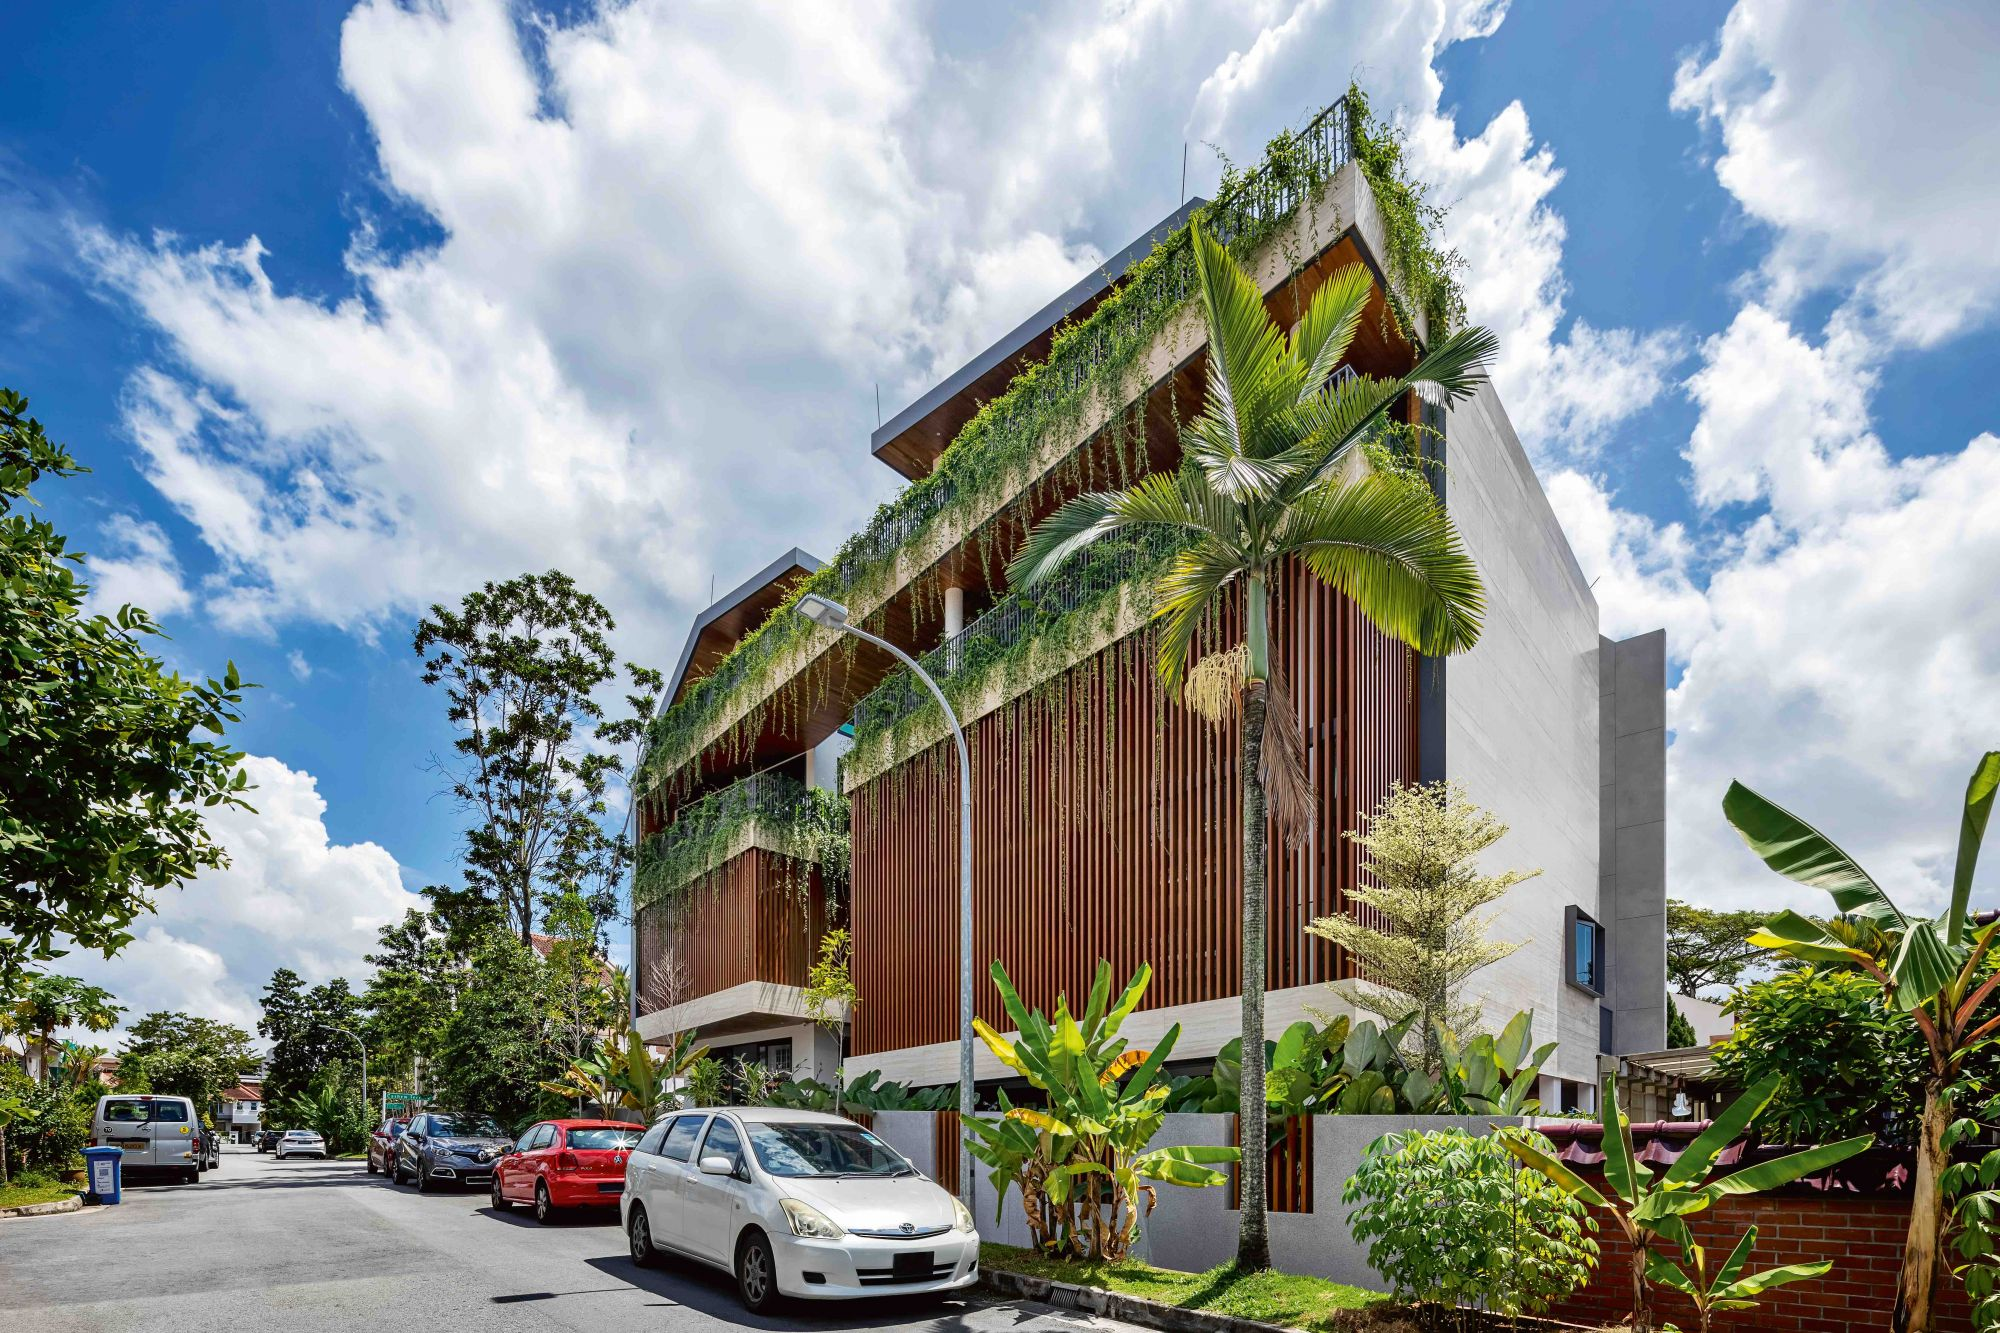 Home Tour: A Nature-Inspired Abode With Lush Green Terraces